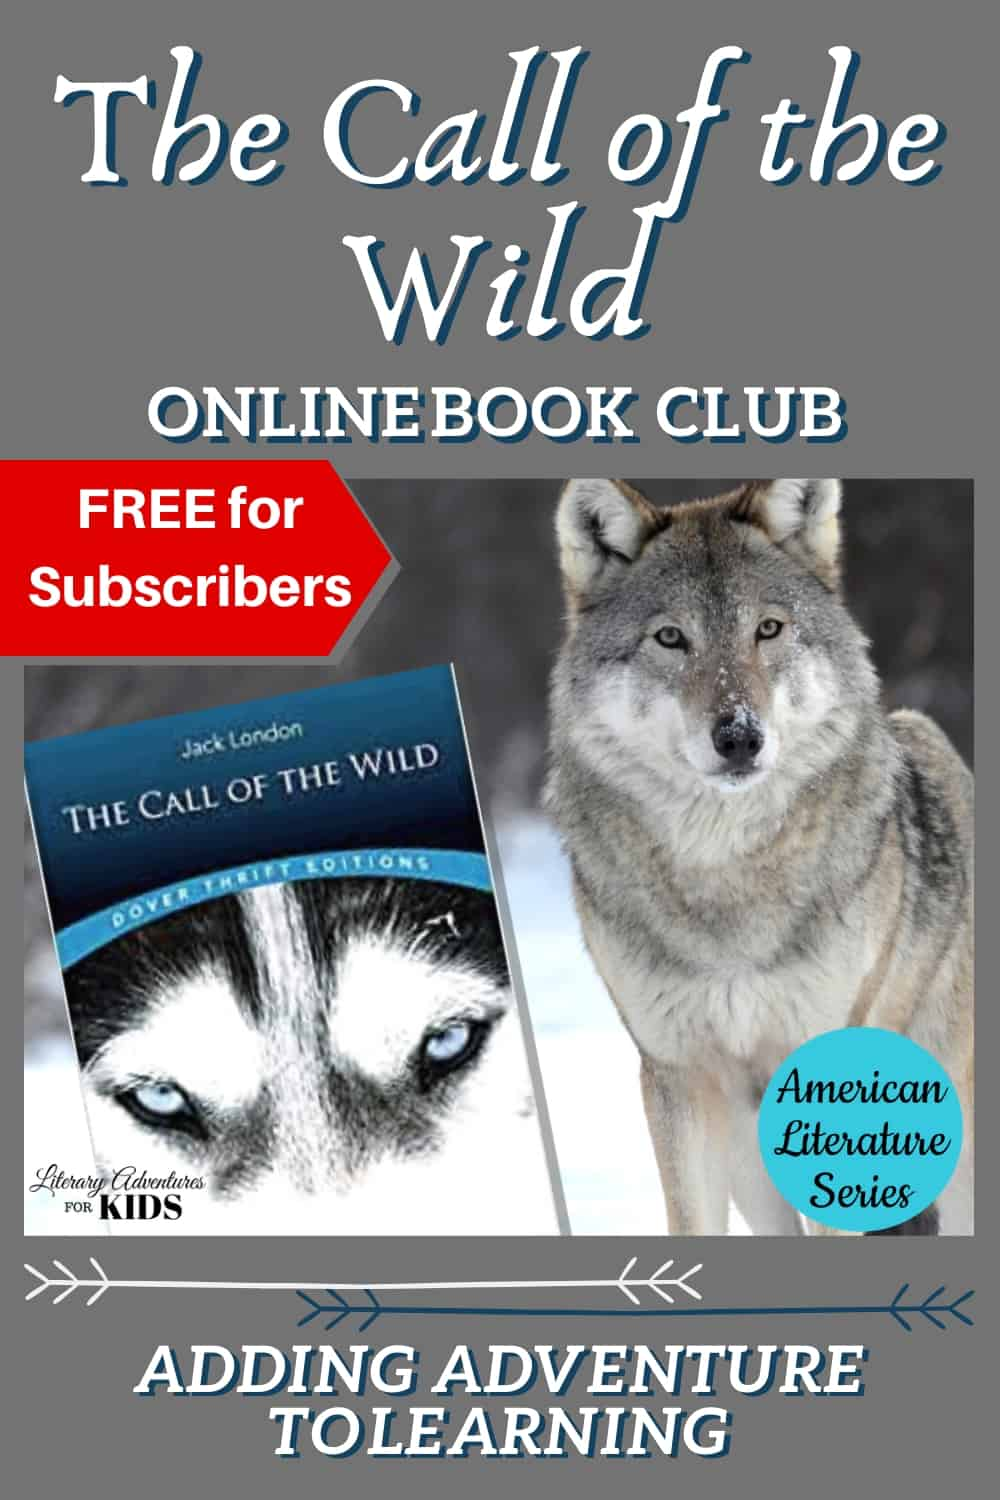 In this course, The Call of the Wild Online Book Club, we will read through the book The Call of the Wild by Jack London. As we are reading, we will go on rabbit trails of discovery into history, science, geography, and more. We will find ways to learn by experiencing parts of the book through hands-on activities. At the conclusion of the story, we will have a party school to celebrate this classic story. #onlinebookclub #la4k #homeschooling